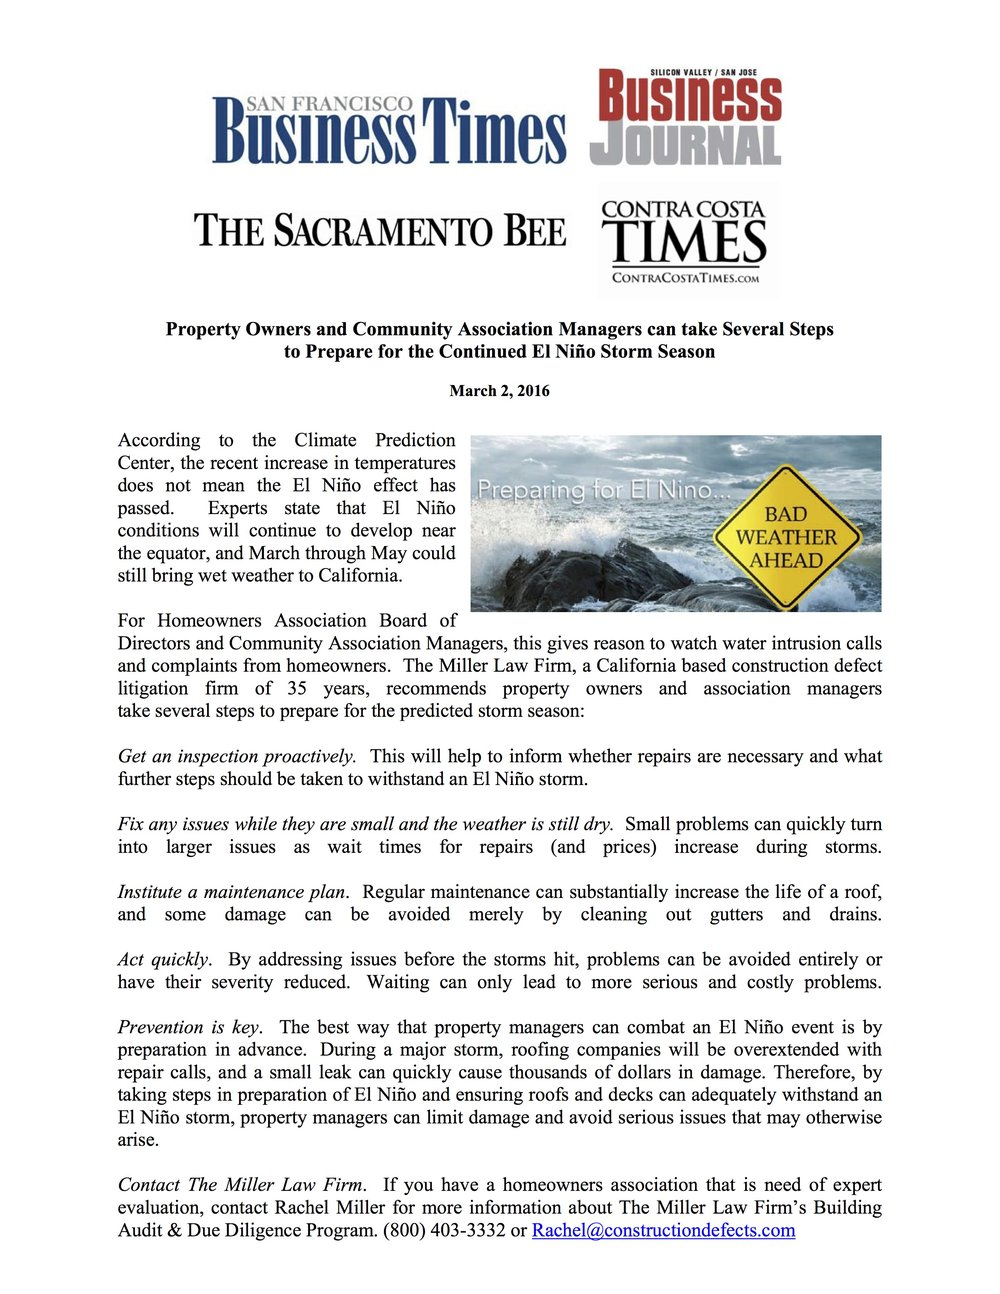 SF Business Times - Property Owners and Community Association Managers can take Several Steps to Prepare for the Continued El Niño Storm Season